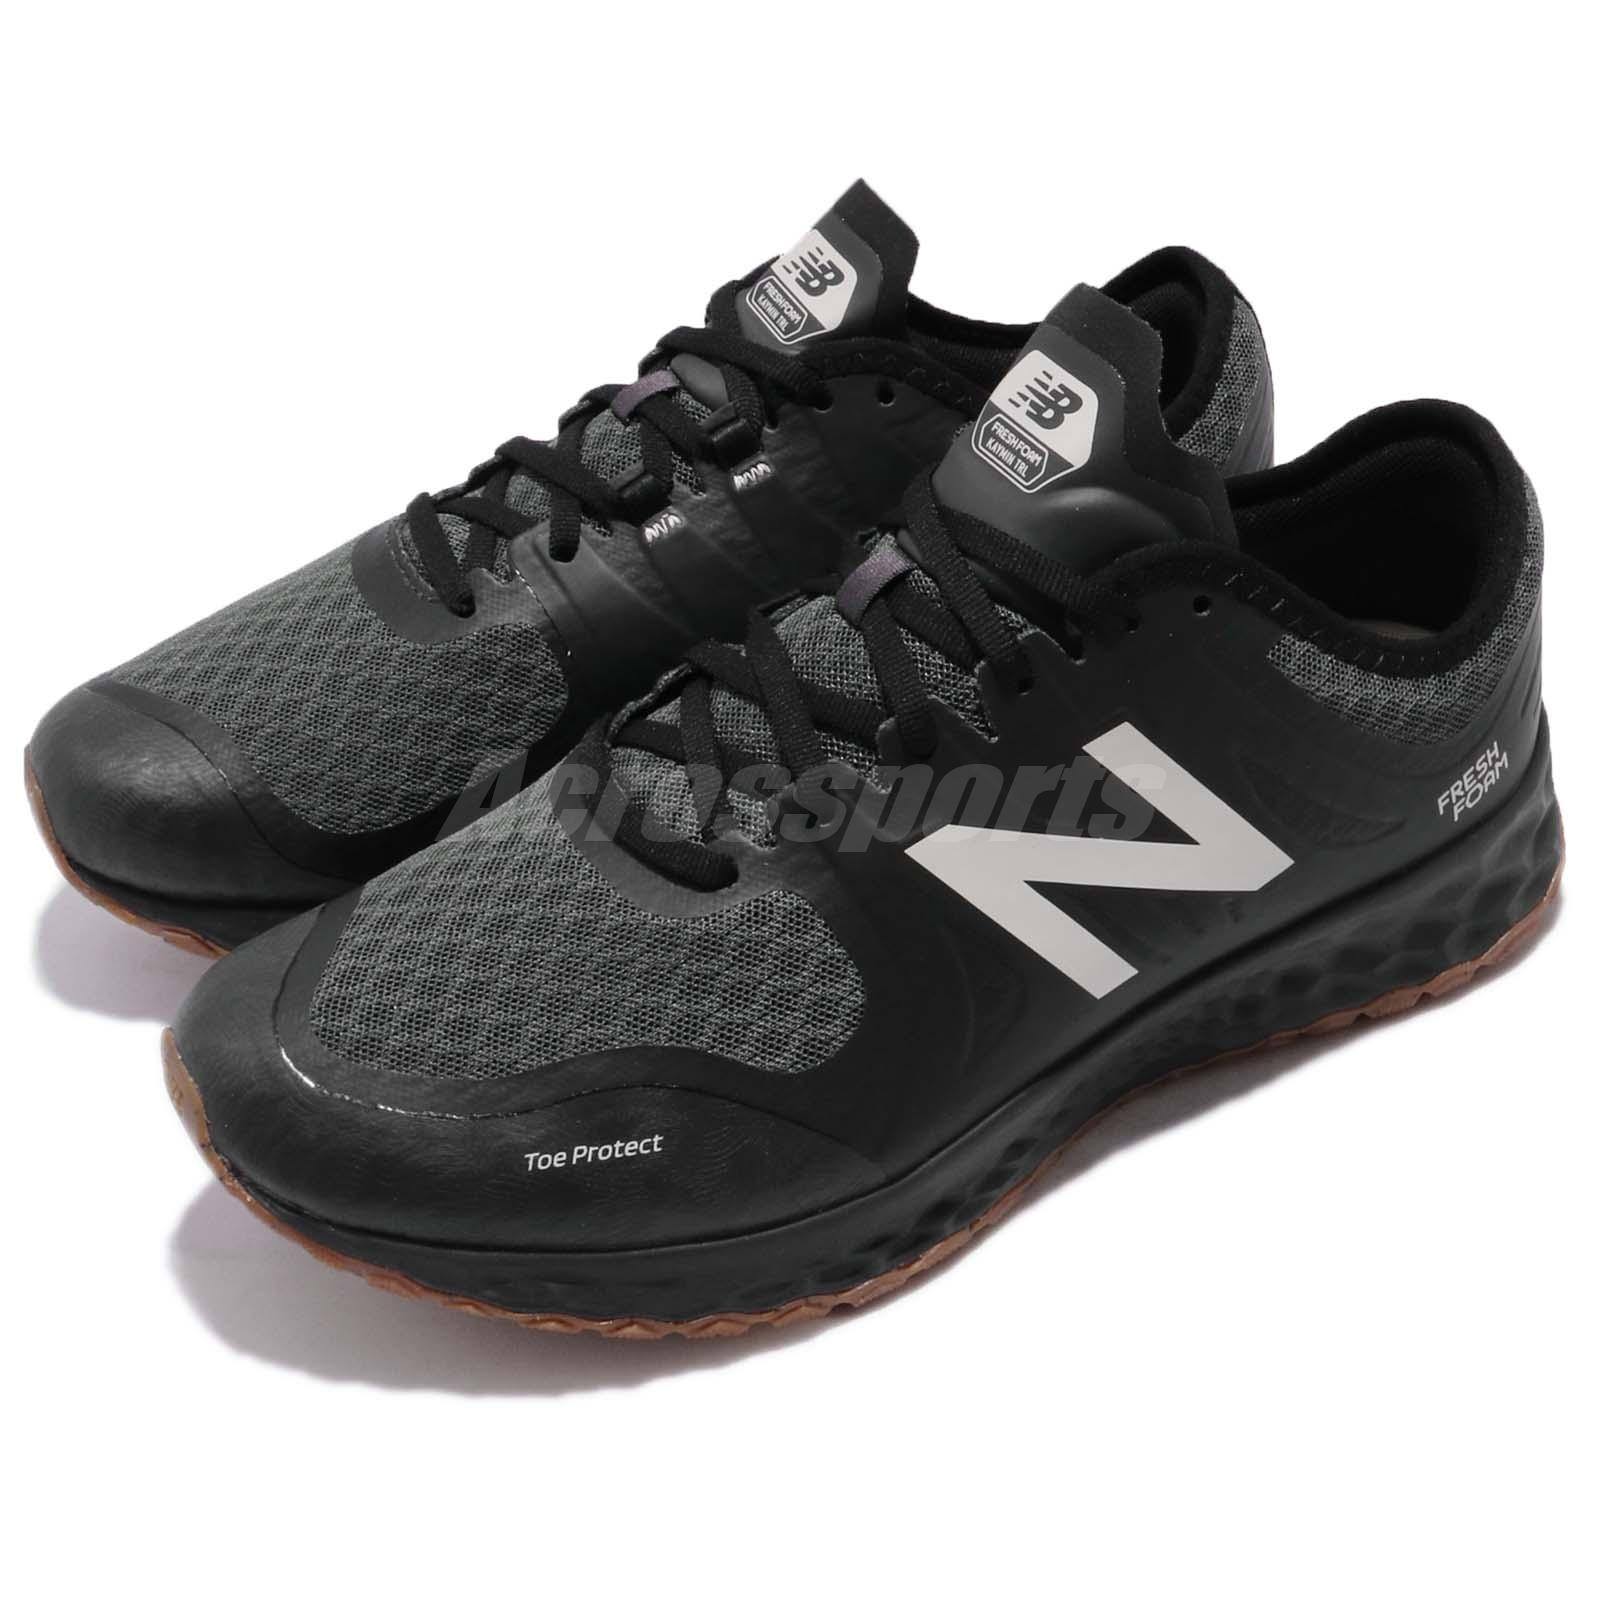 New Balance MTKYMLB1 4E Wide Black Gum Men Running Shoes Sneakers MTKYMLB14E